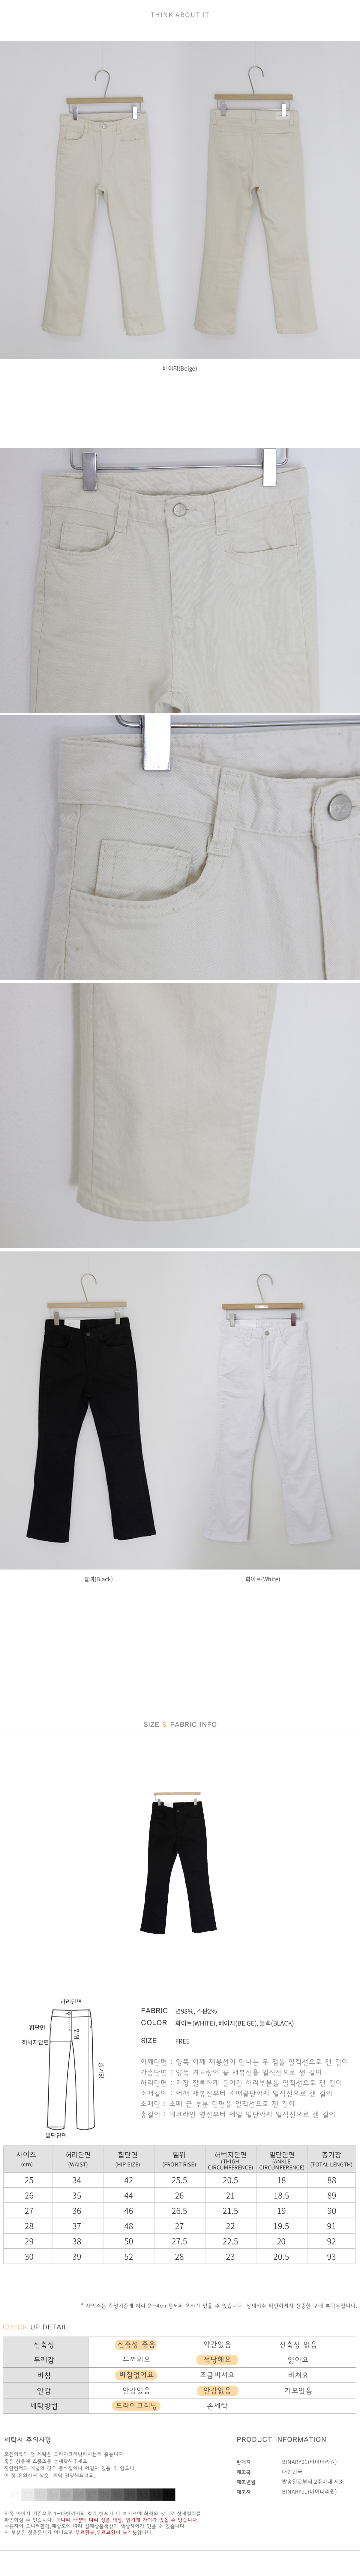 Slimline vanilla cotton pants